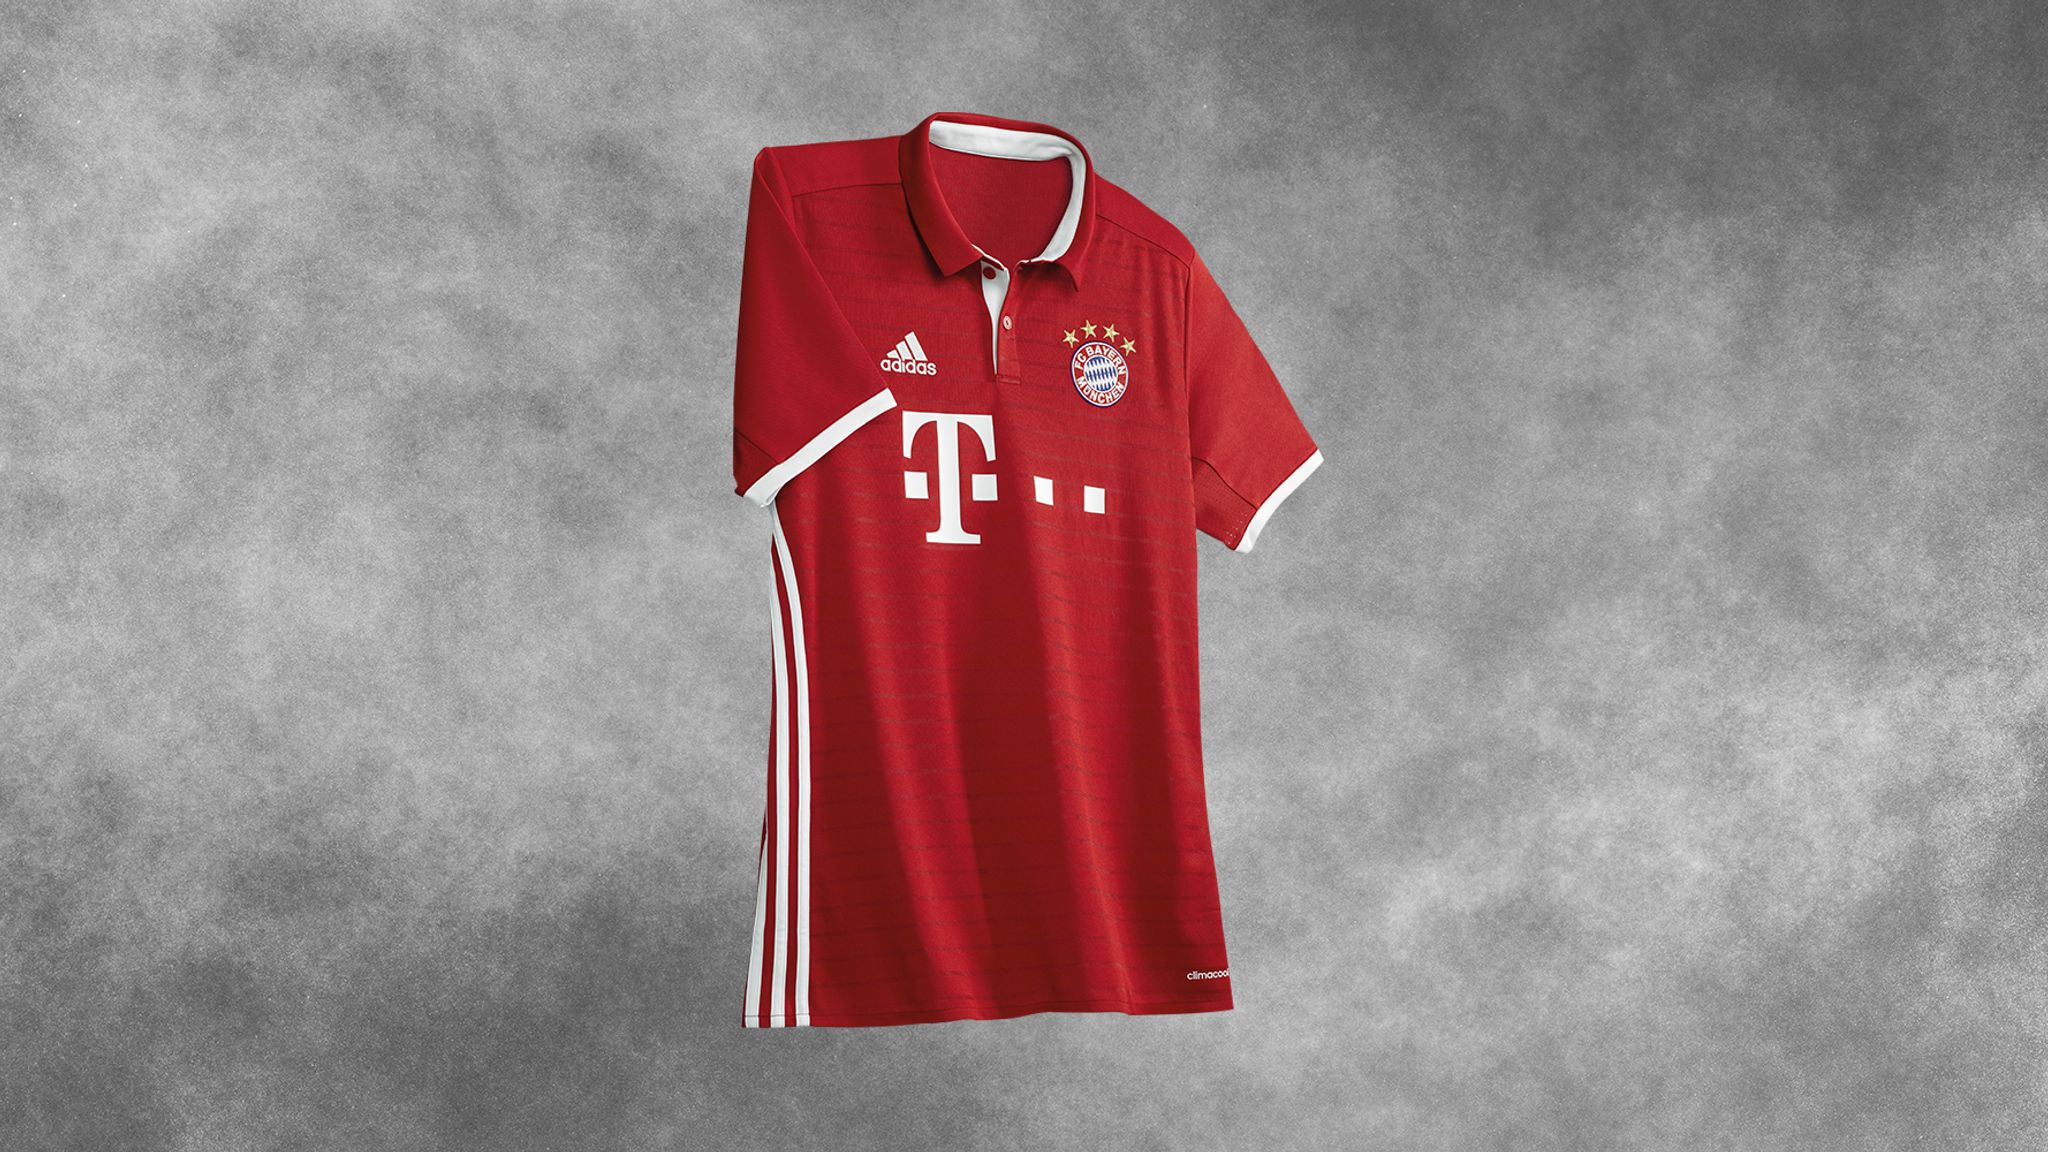 New football kits 2016/17: Bayern Munich, Juventus, Borussia